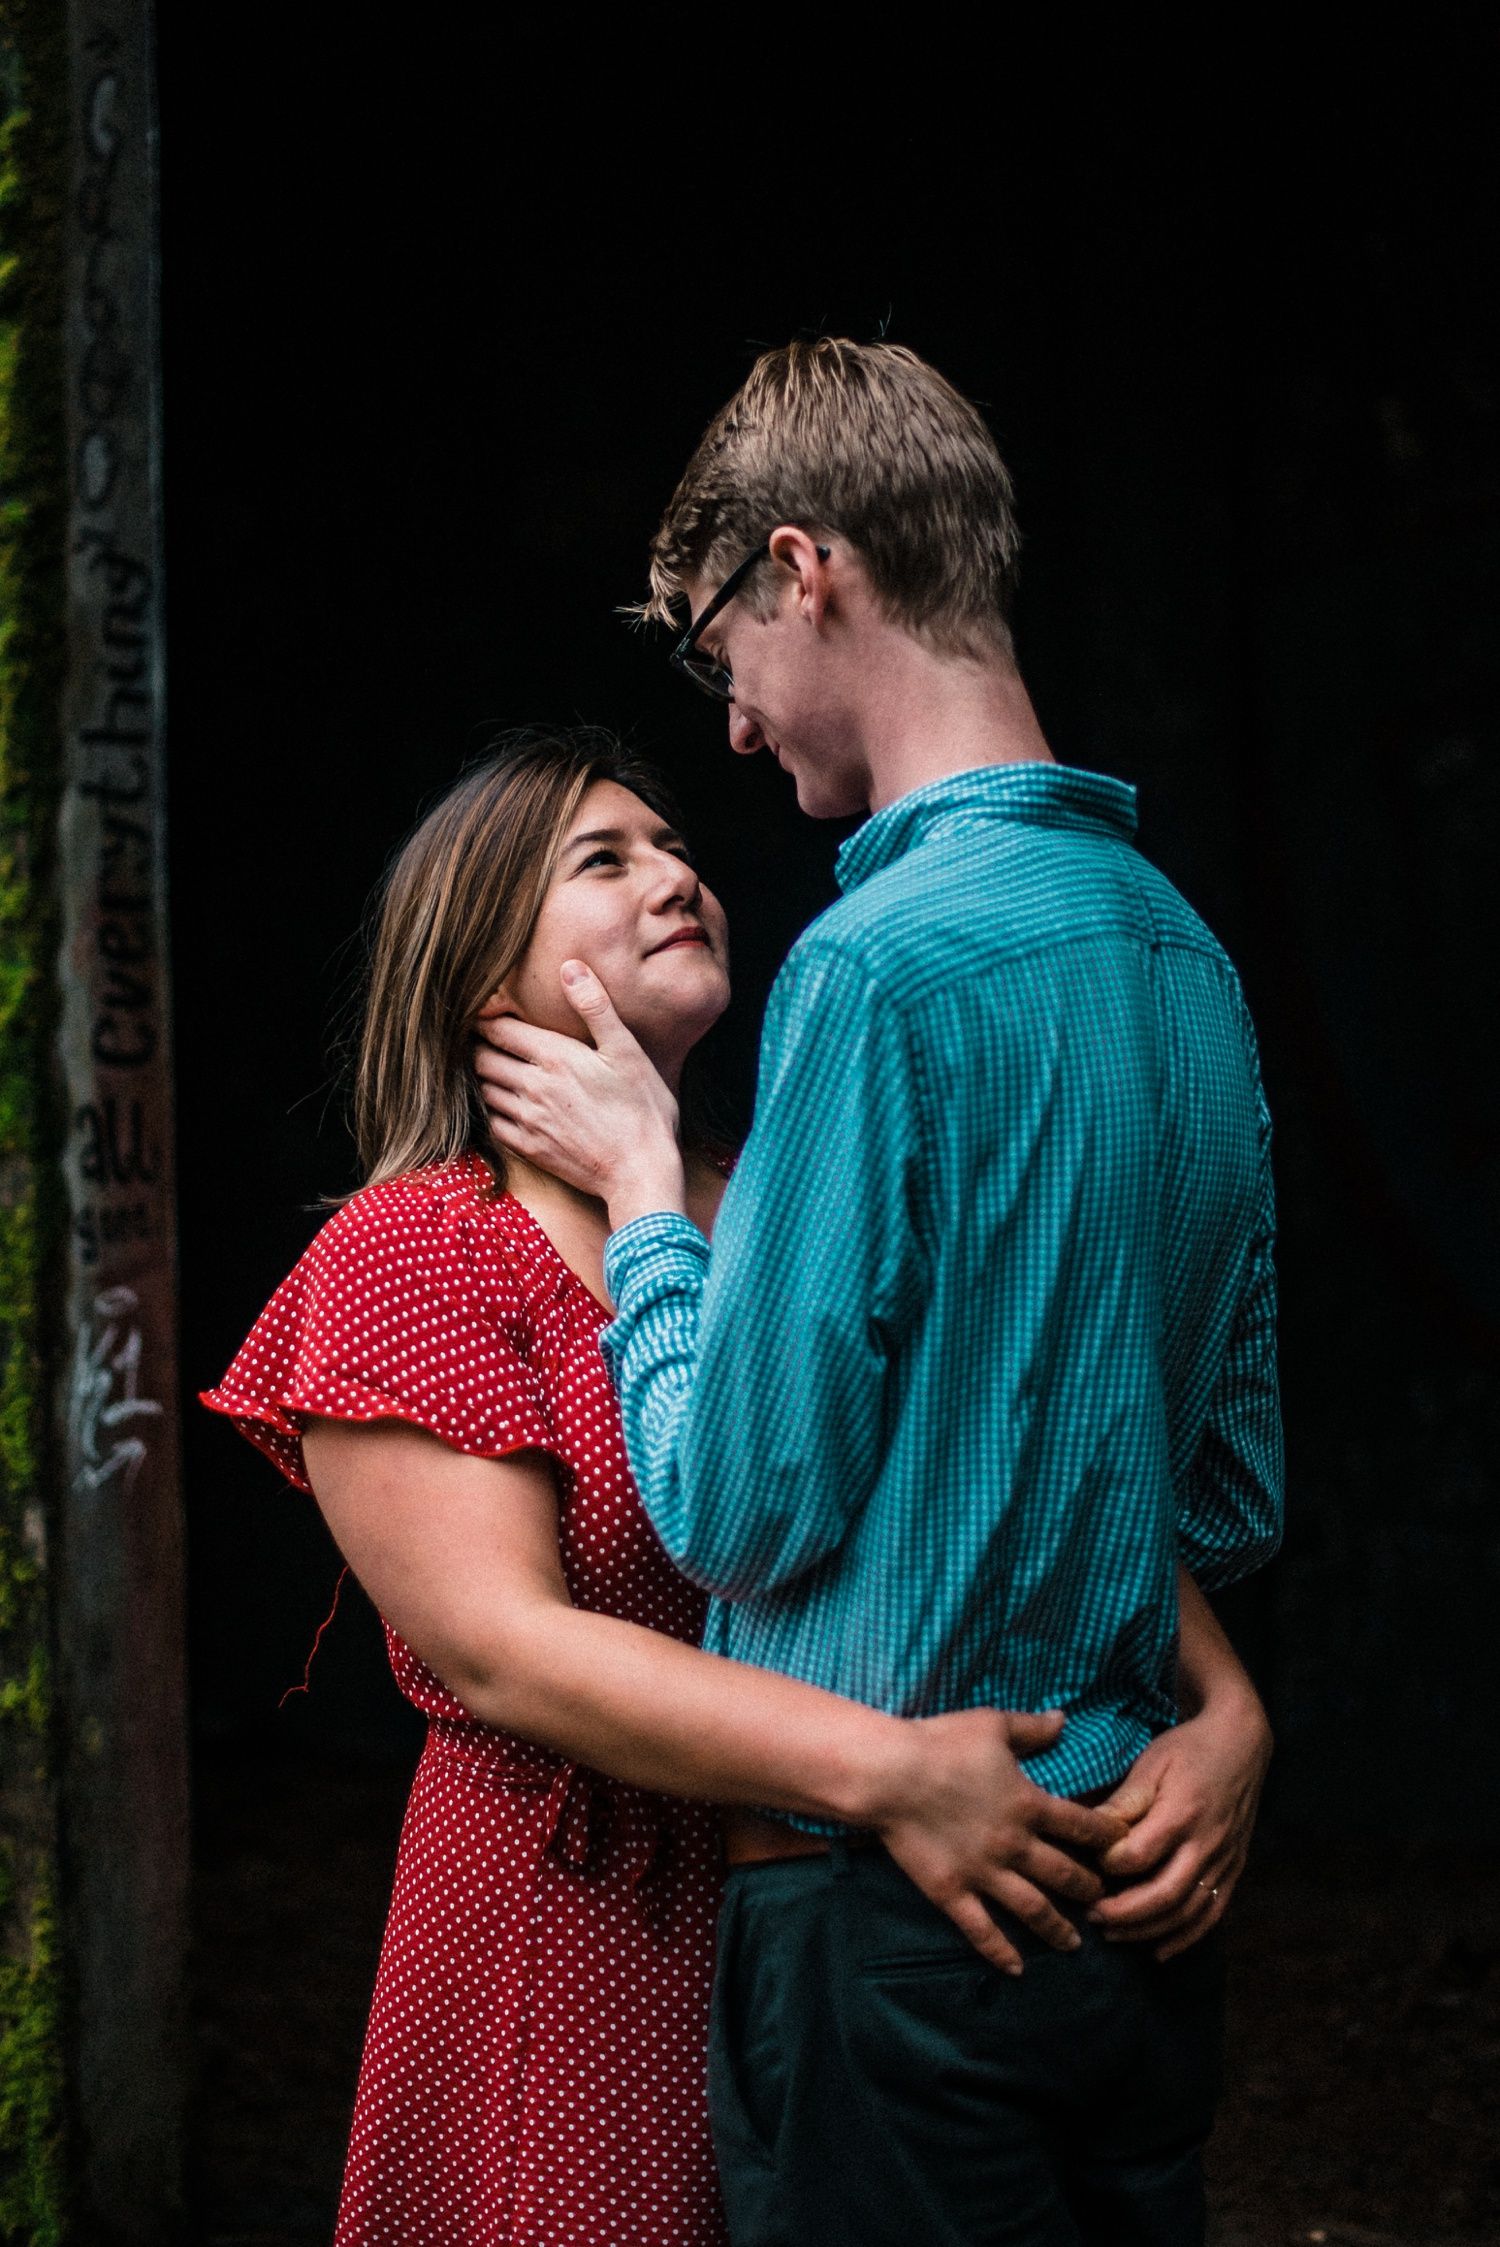 Cape_Disappointment_Engagement_Kailey_Alex_The_Foxes_Photography_126.jpg